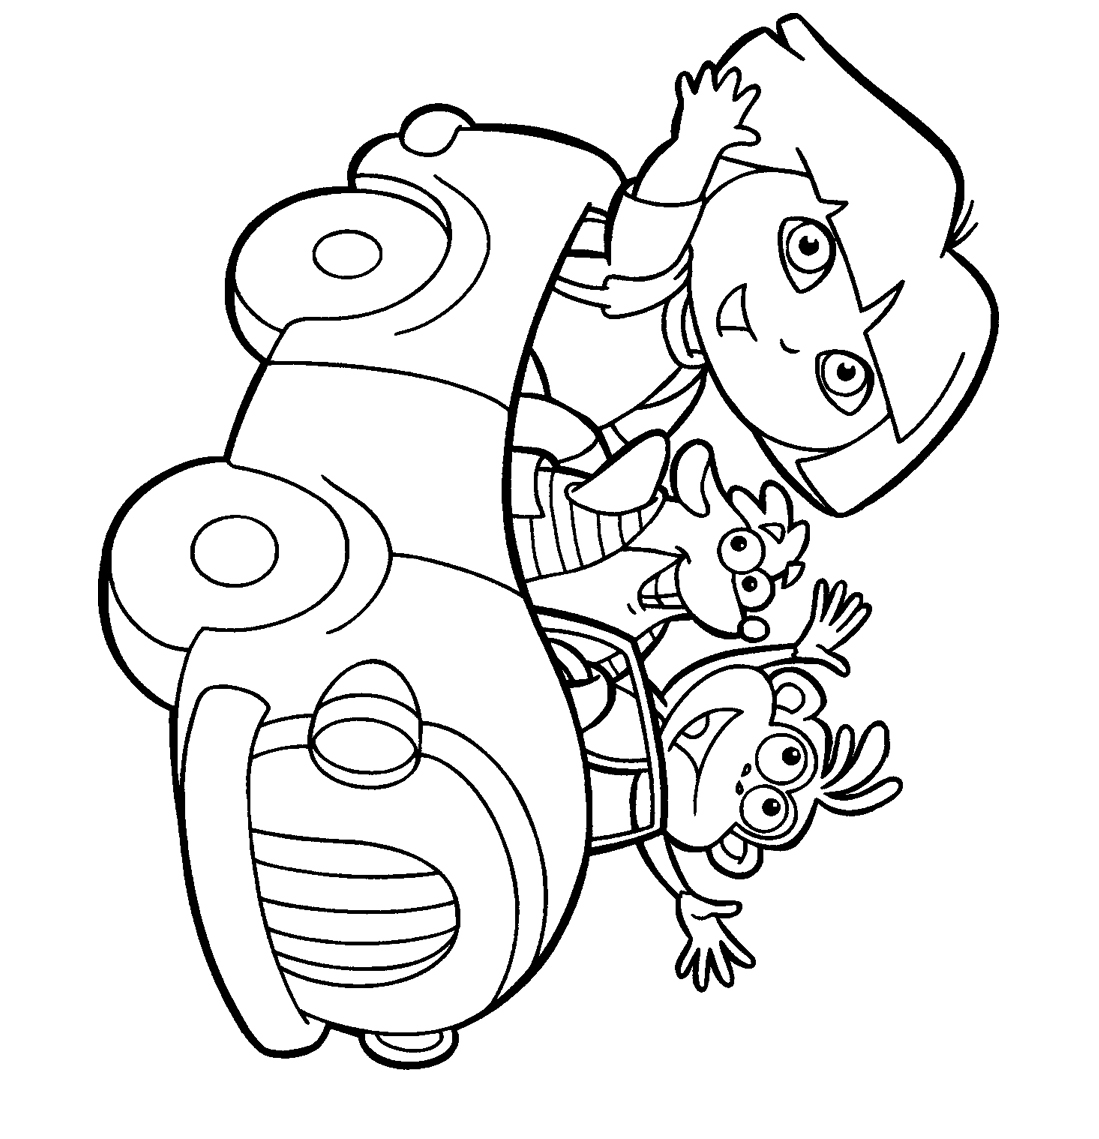 coloring pages for preschool free printable pages for preschoolers coloring preschool for pages